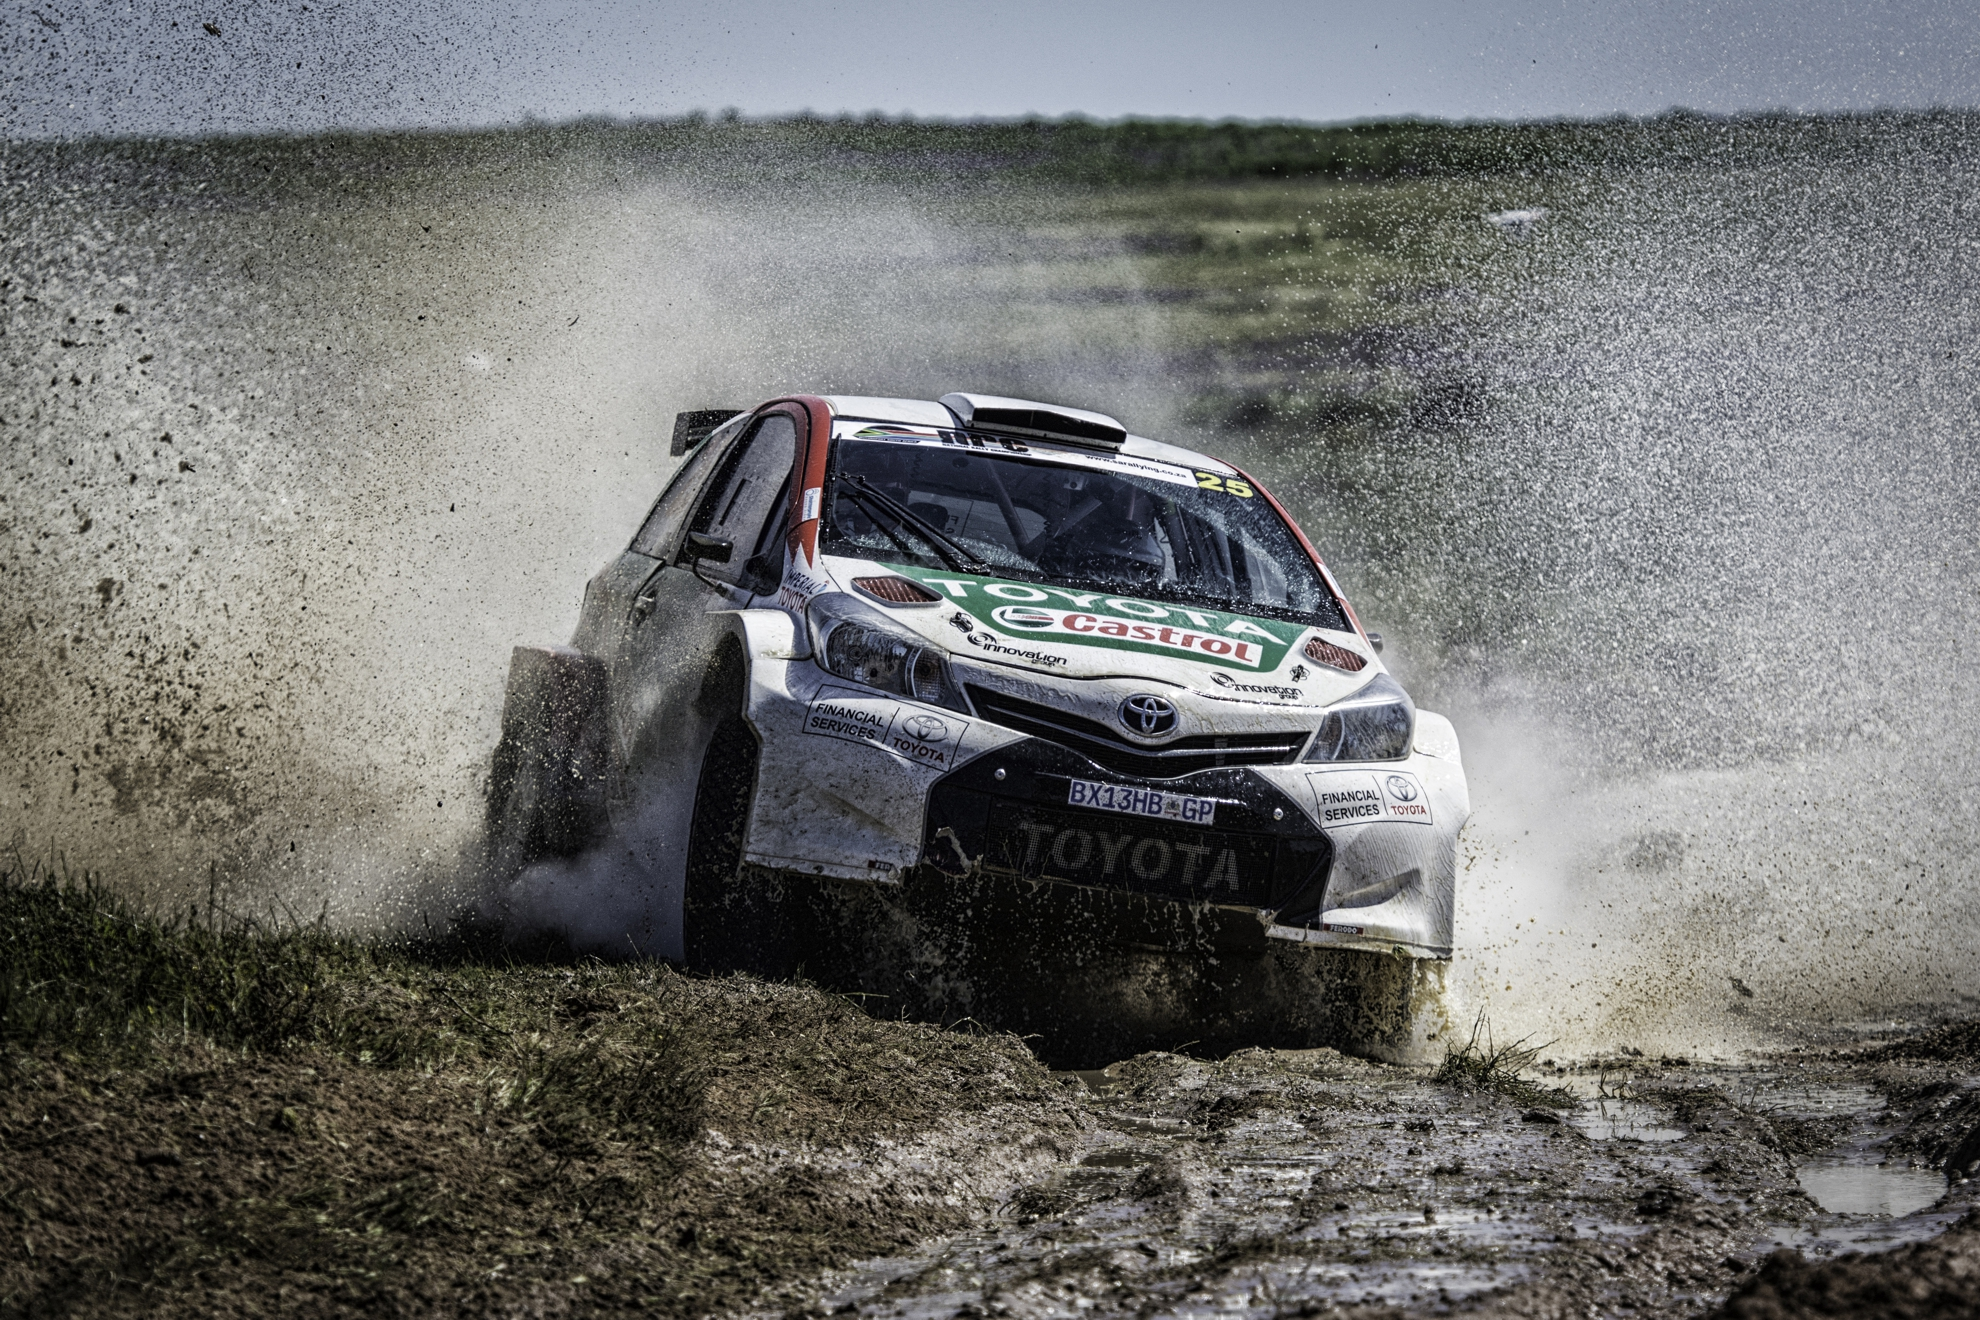 Toyota-Cape-Dealer-Rally-2014